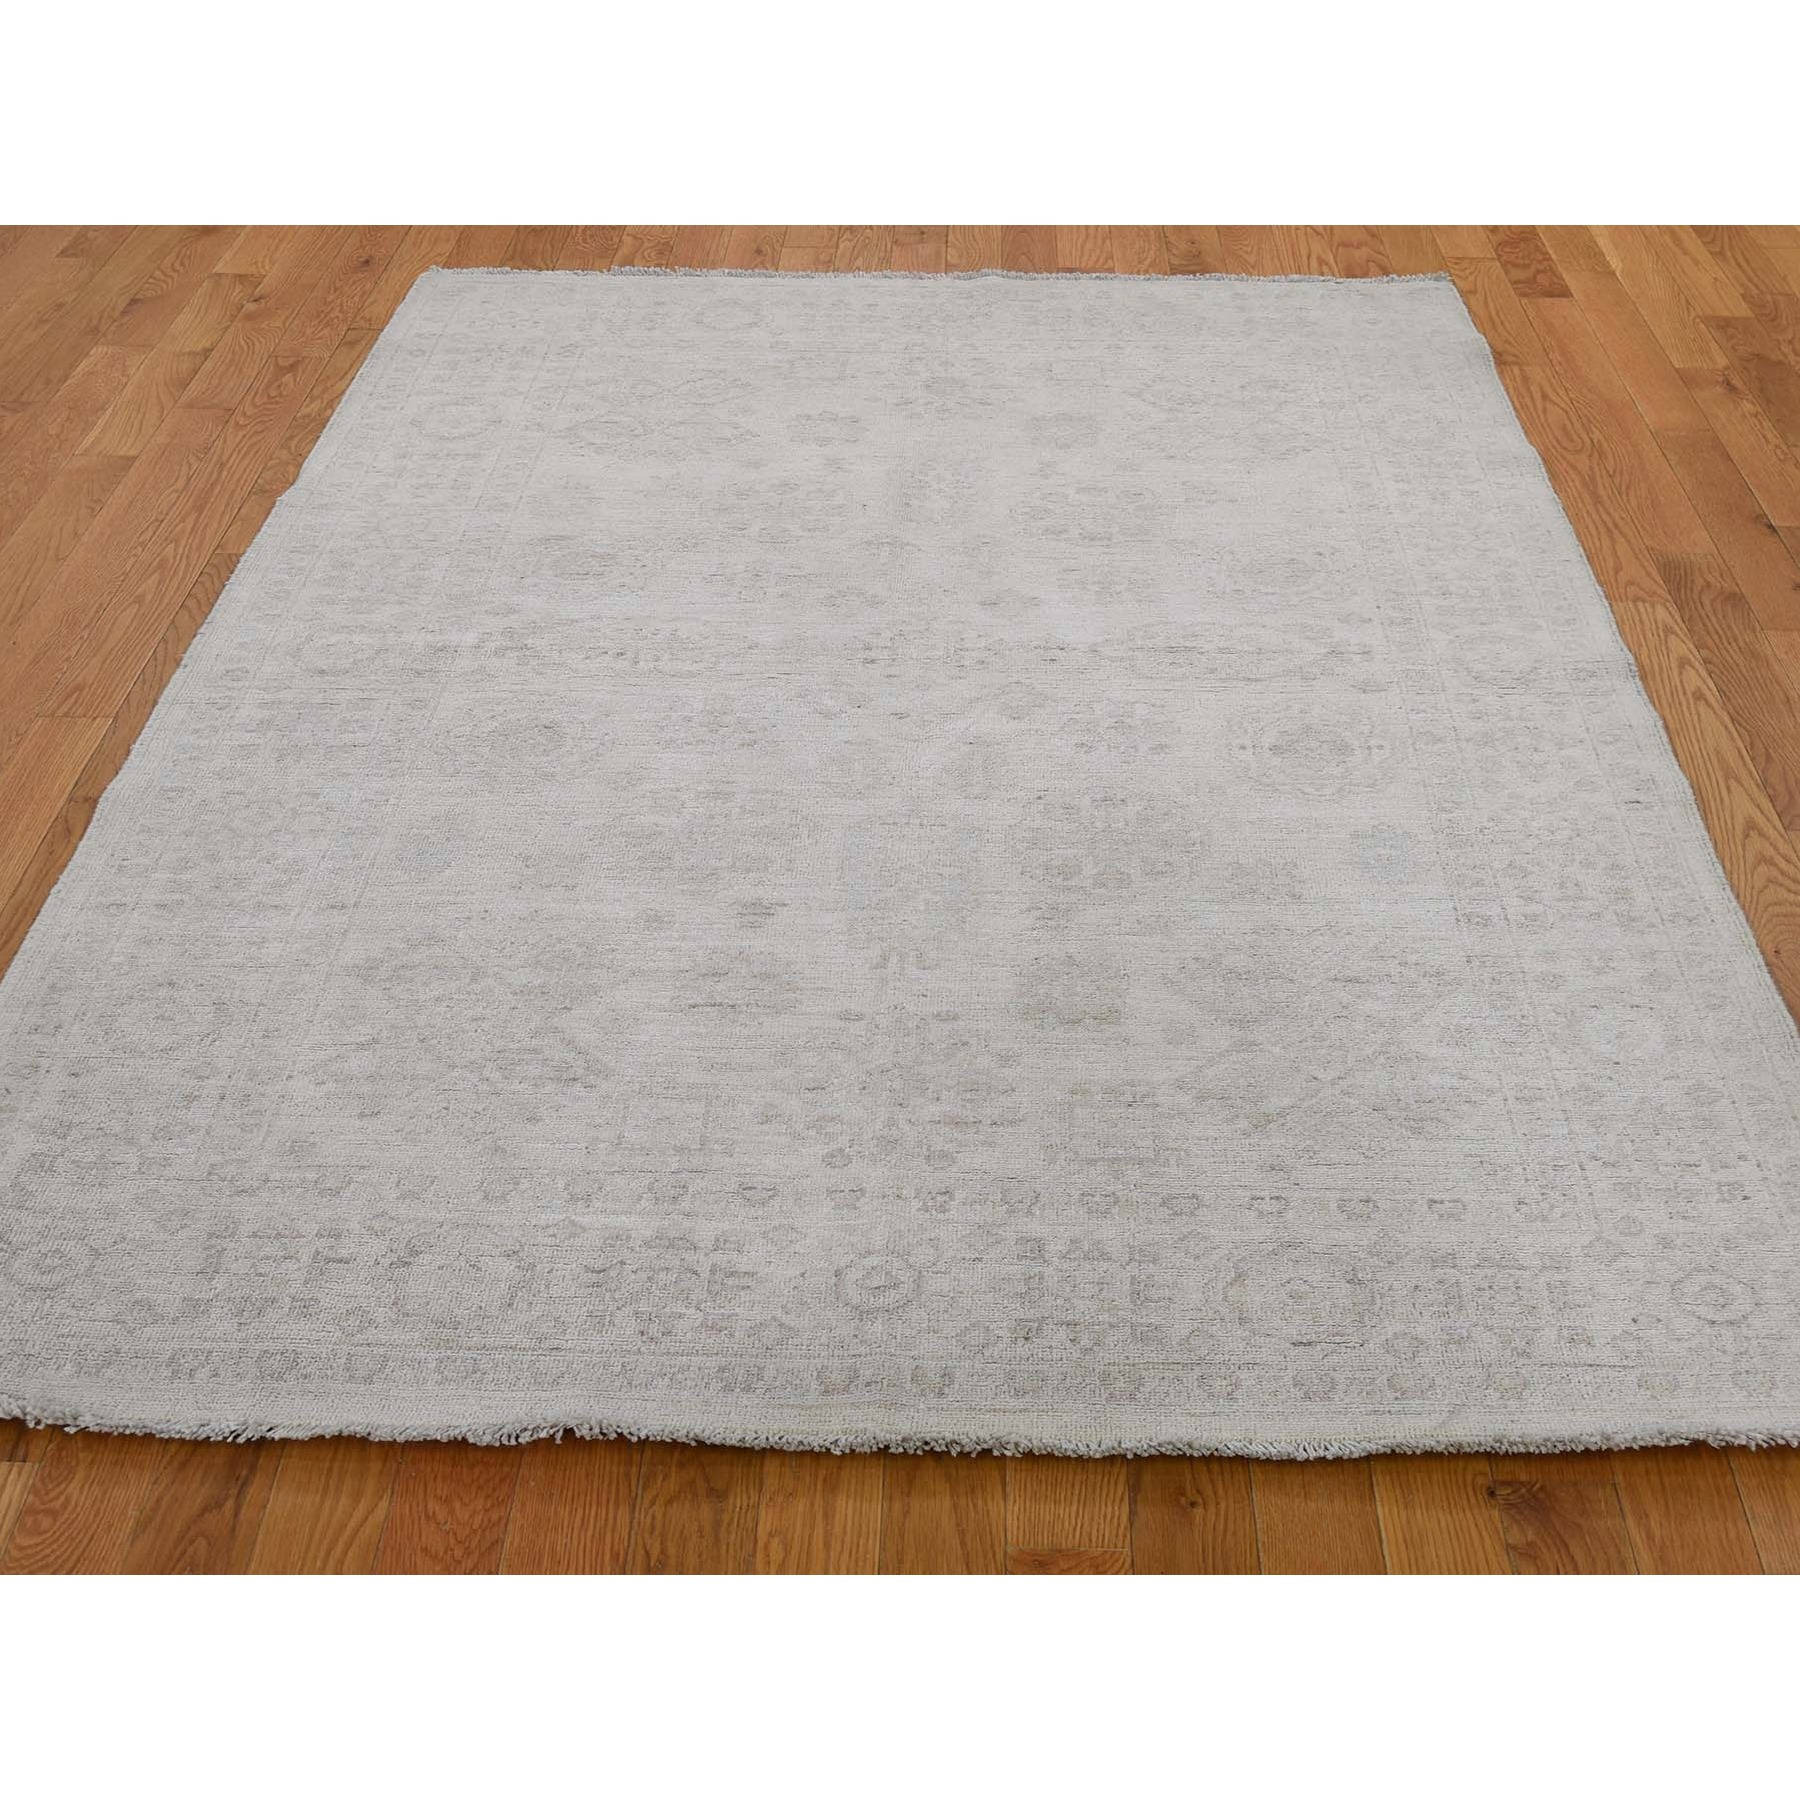 5-1 x6-10  Peshawar Washed Out Hand-Knotted Pure Wool Oriental Rug